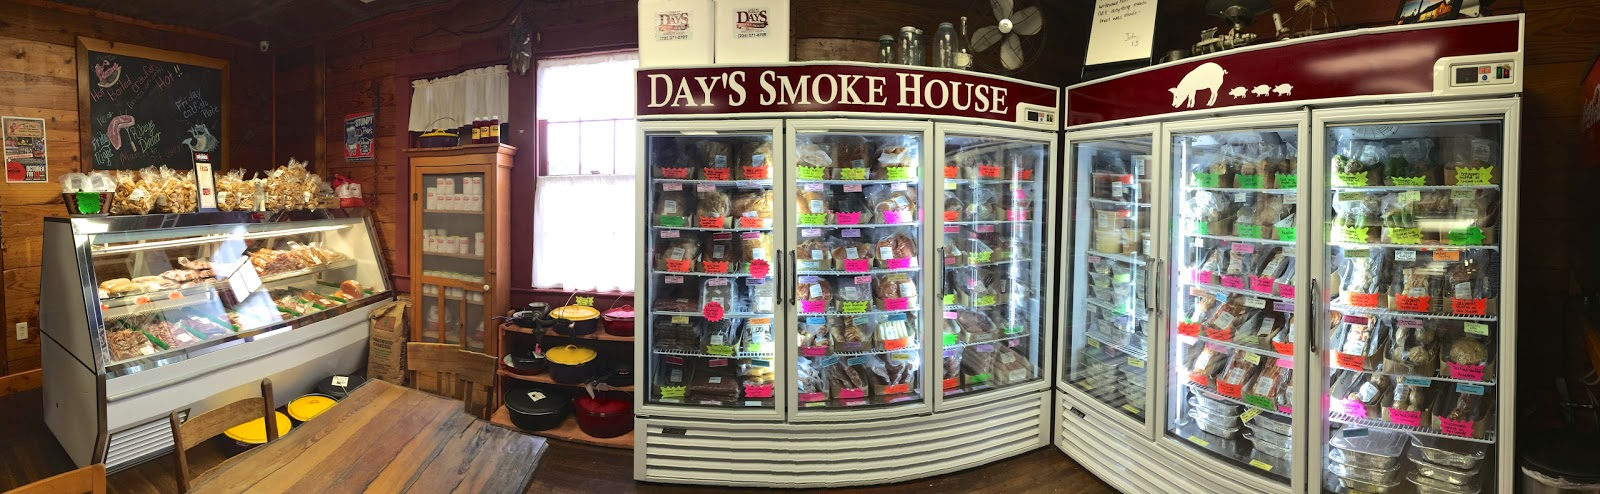 A look inside Day's Smokehouse in Denham Springs, Louisiana